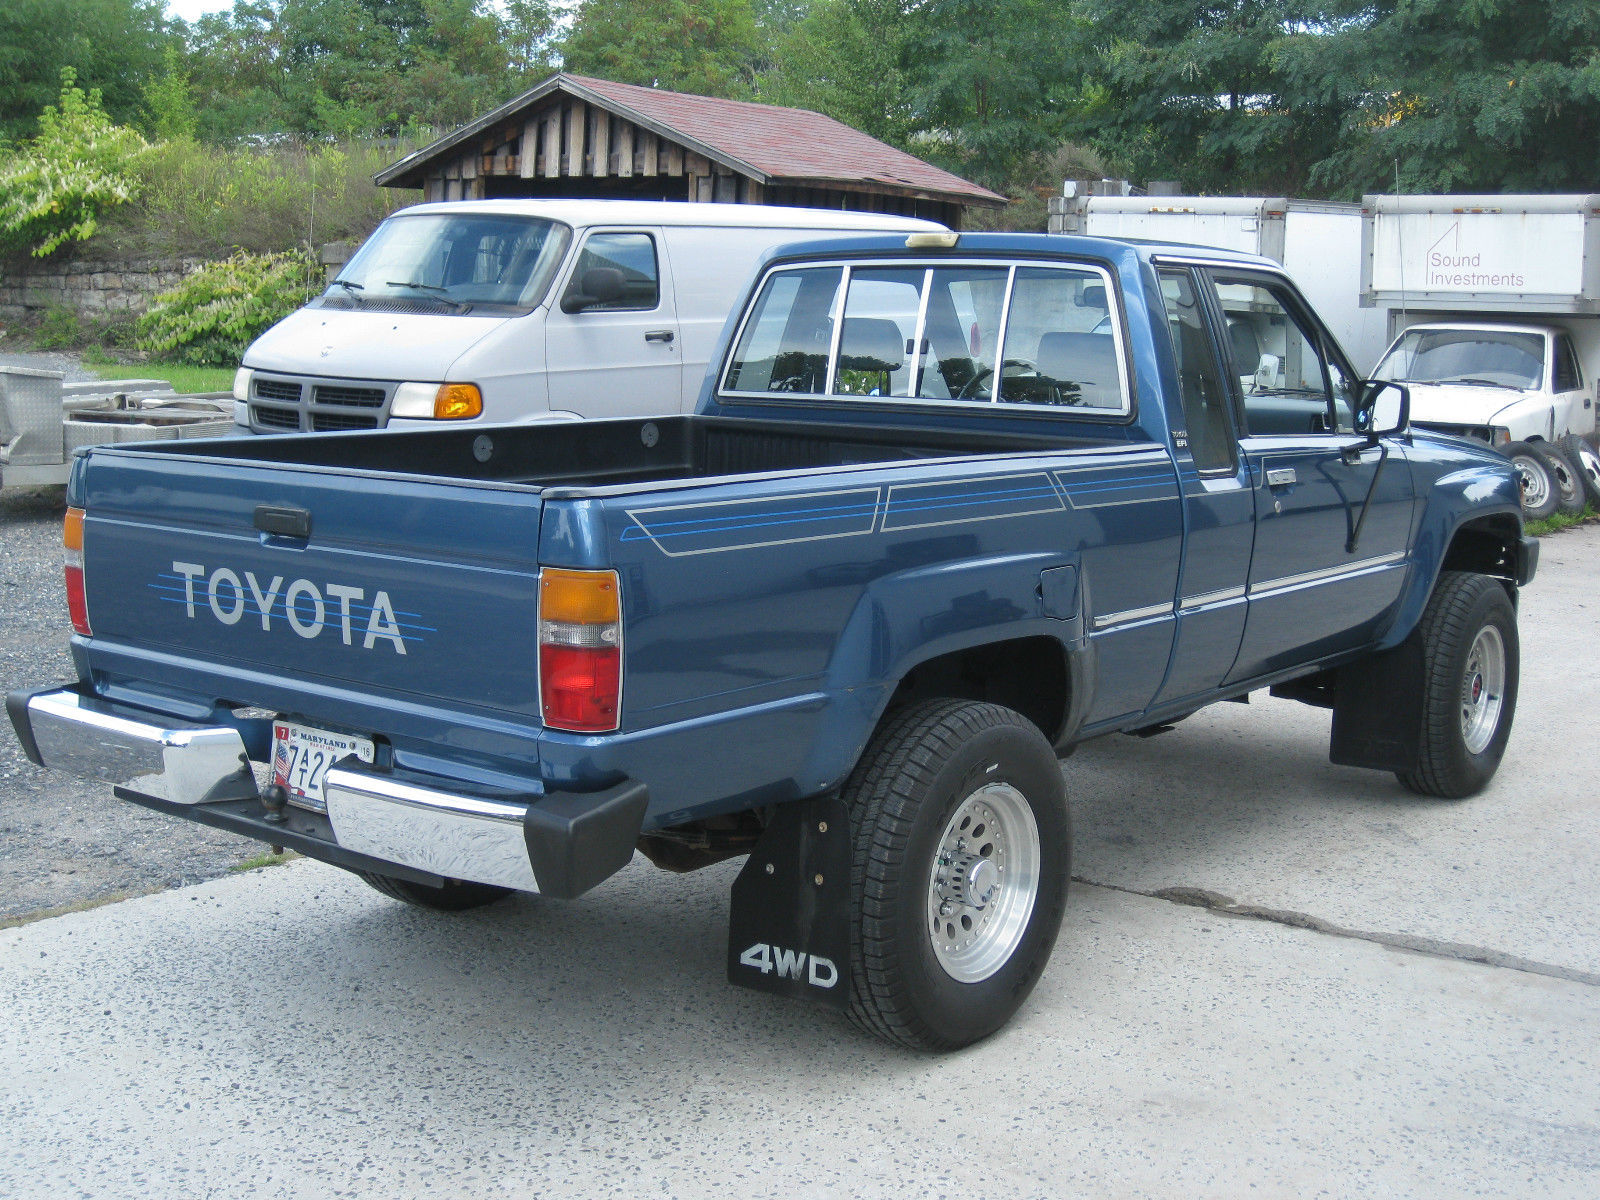 rare blue 1988 toyota pickup extra cab auto 4wd very clean 4cyl classic toyota other 1988 for sale. Black Bedroom Furniture Sets. Home Design Ideas